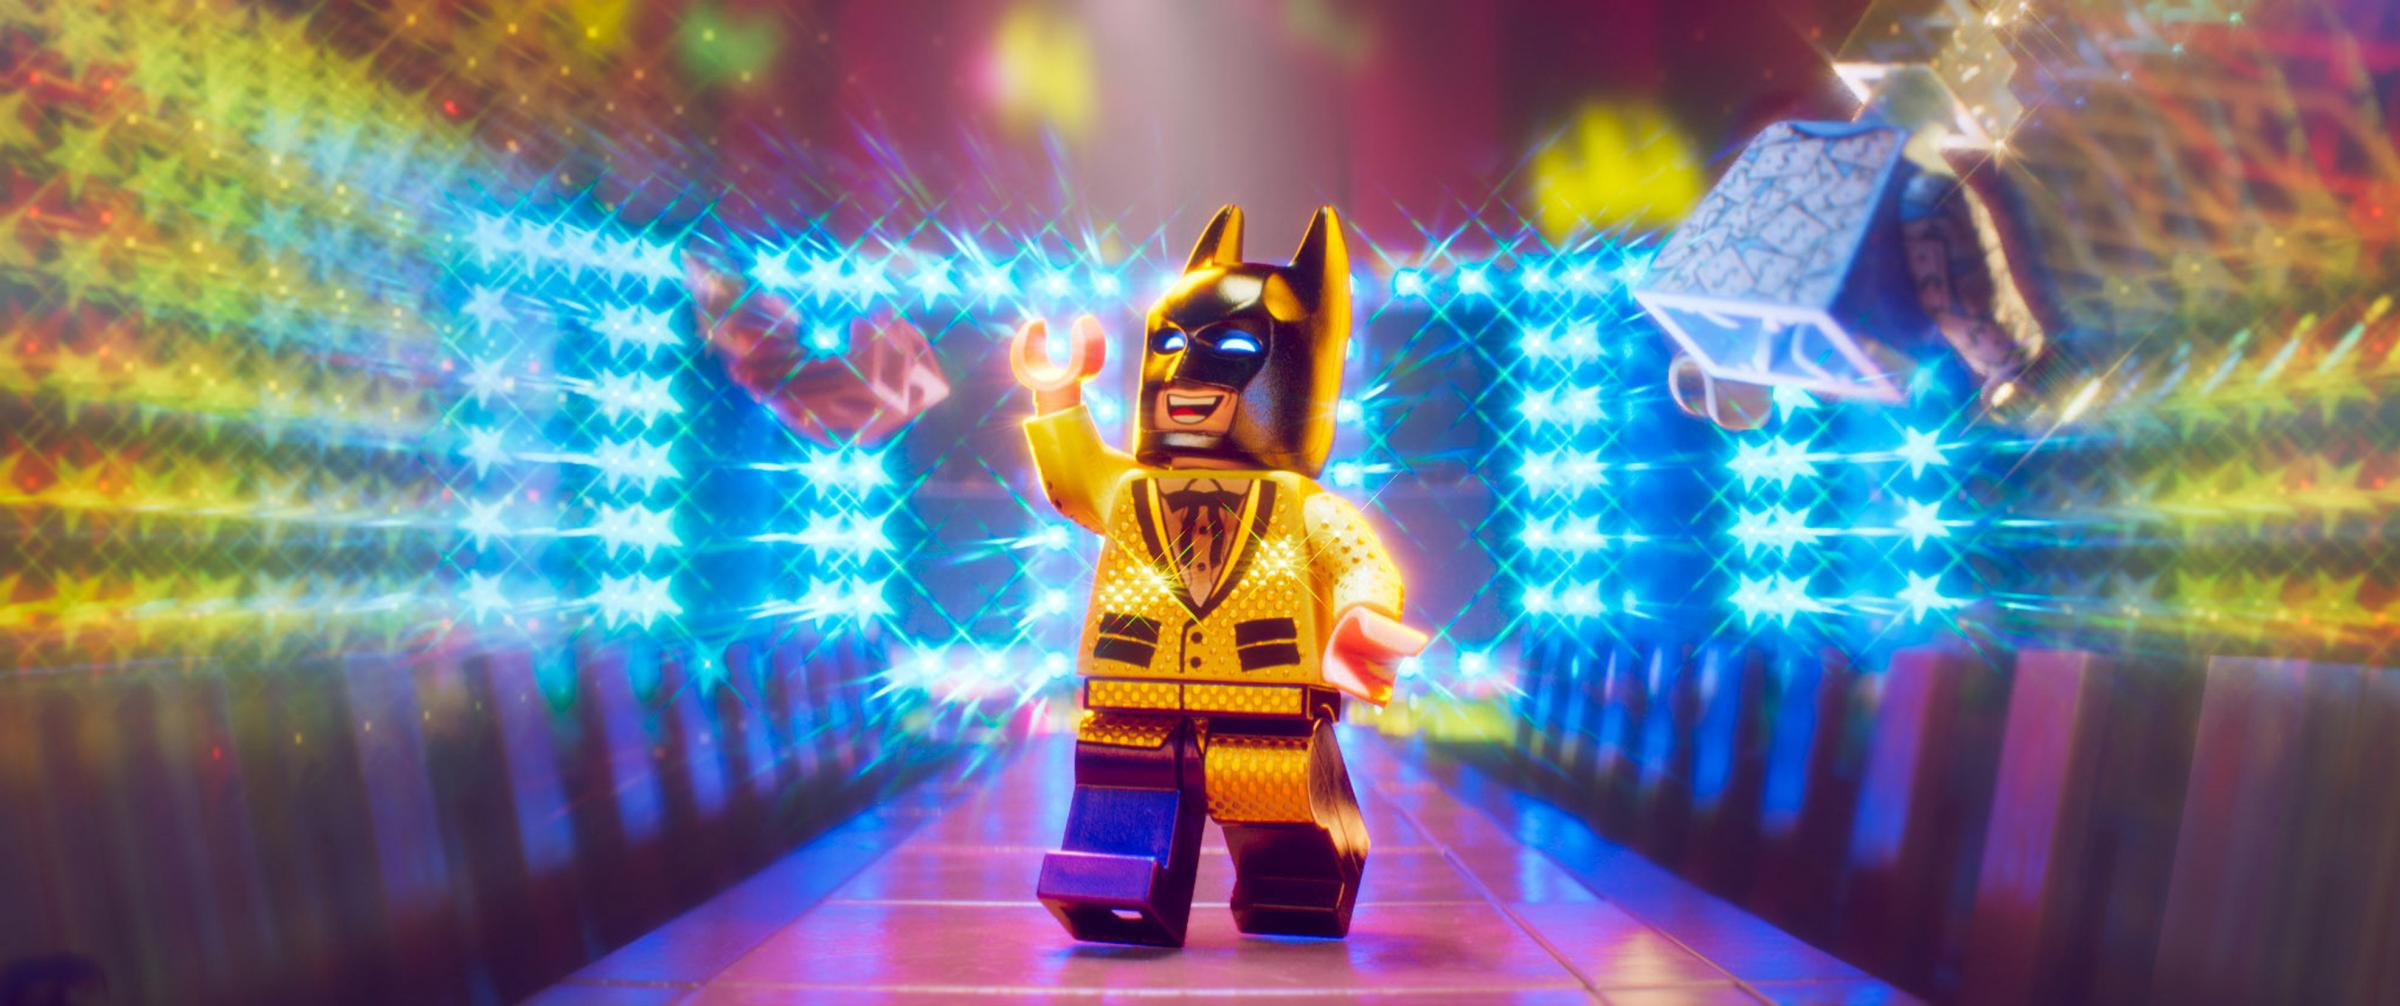 The Lego Batman Movie review: The art of the brick